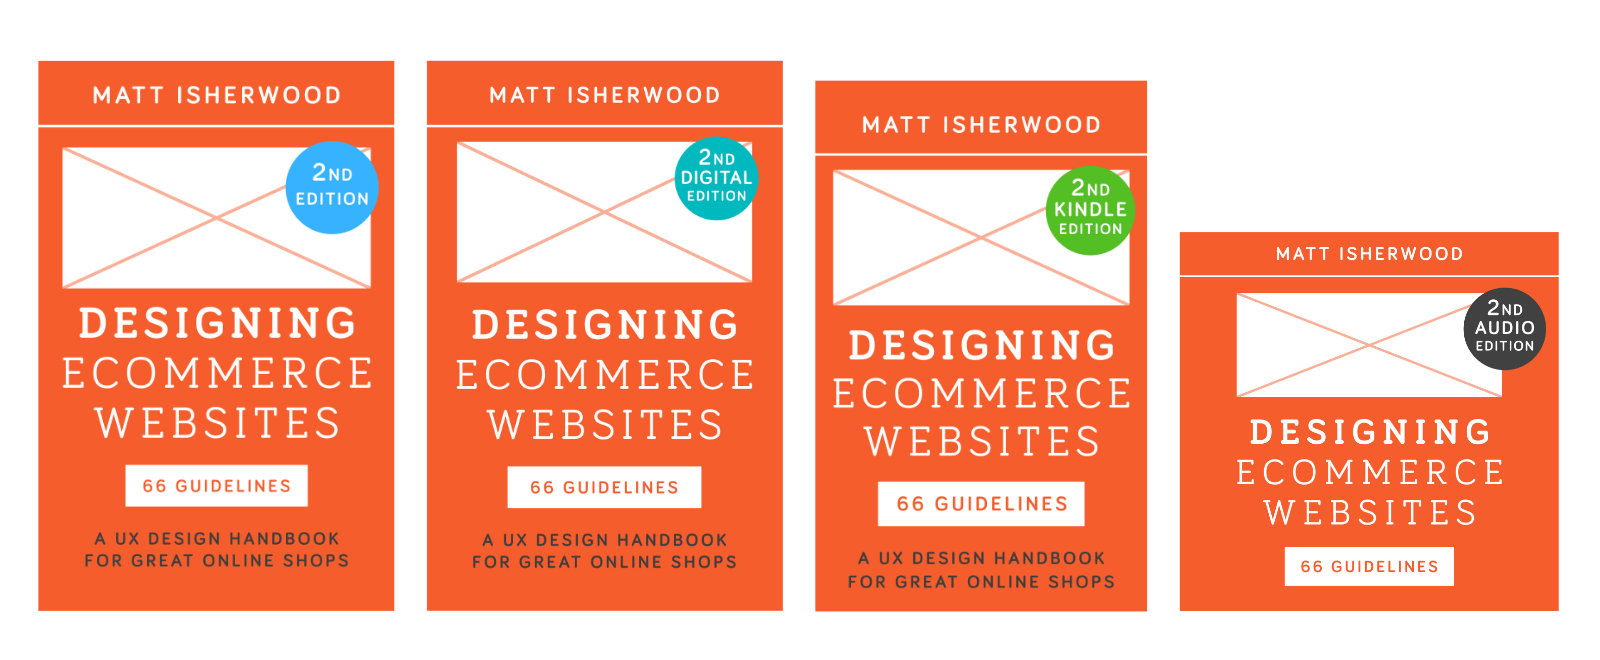 Designing Ecommerce Websites second edition covers